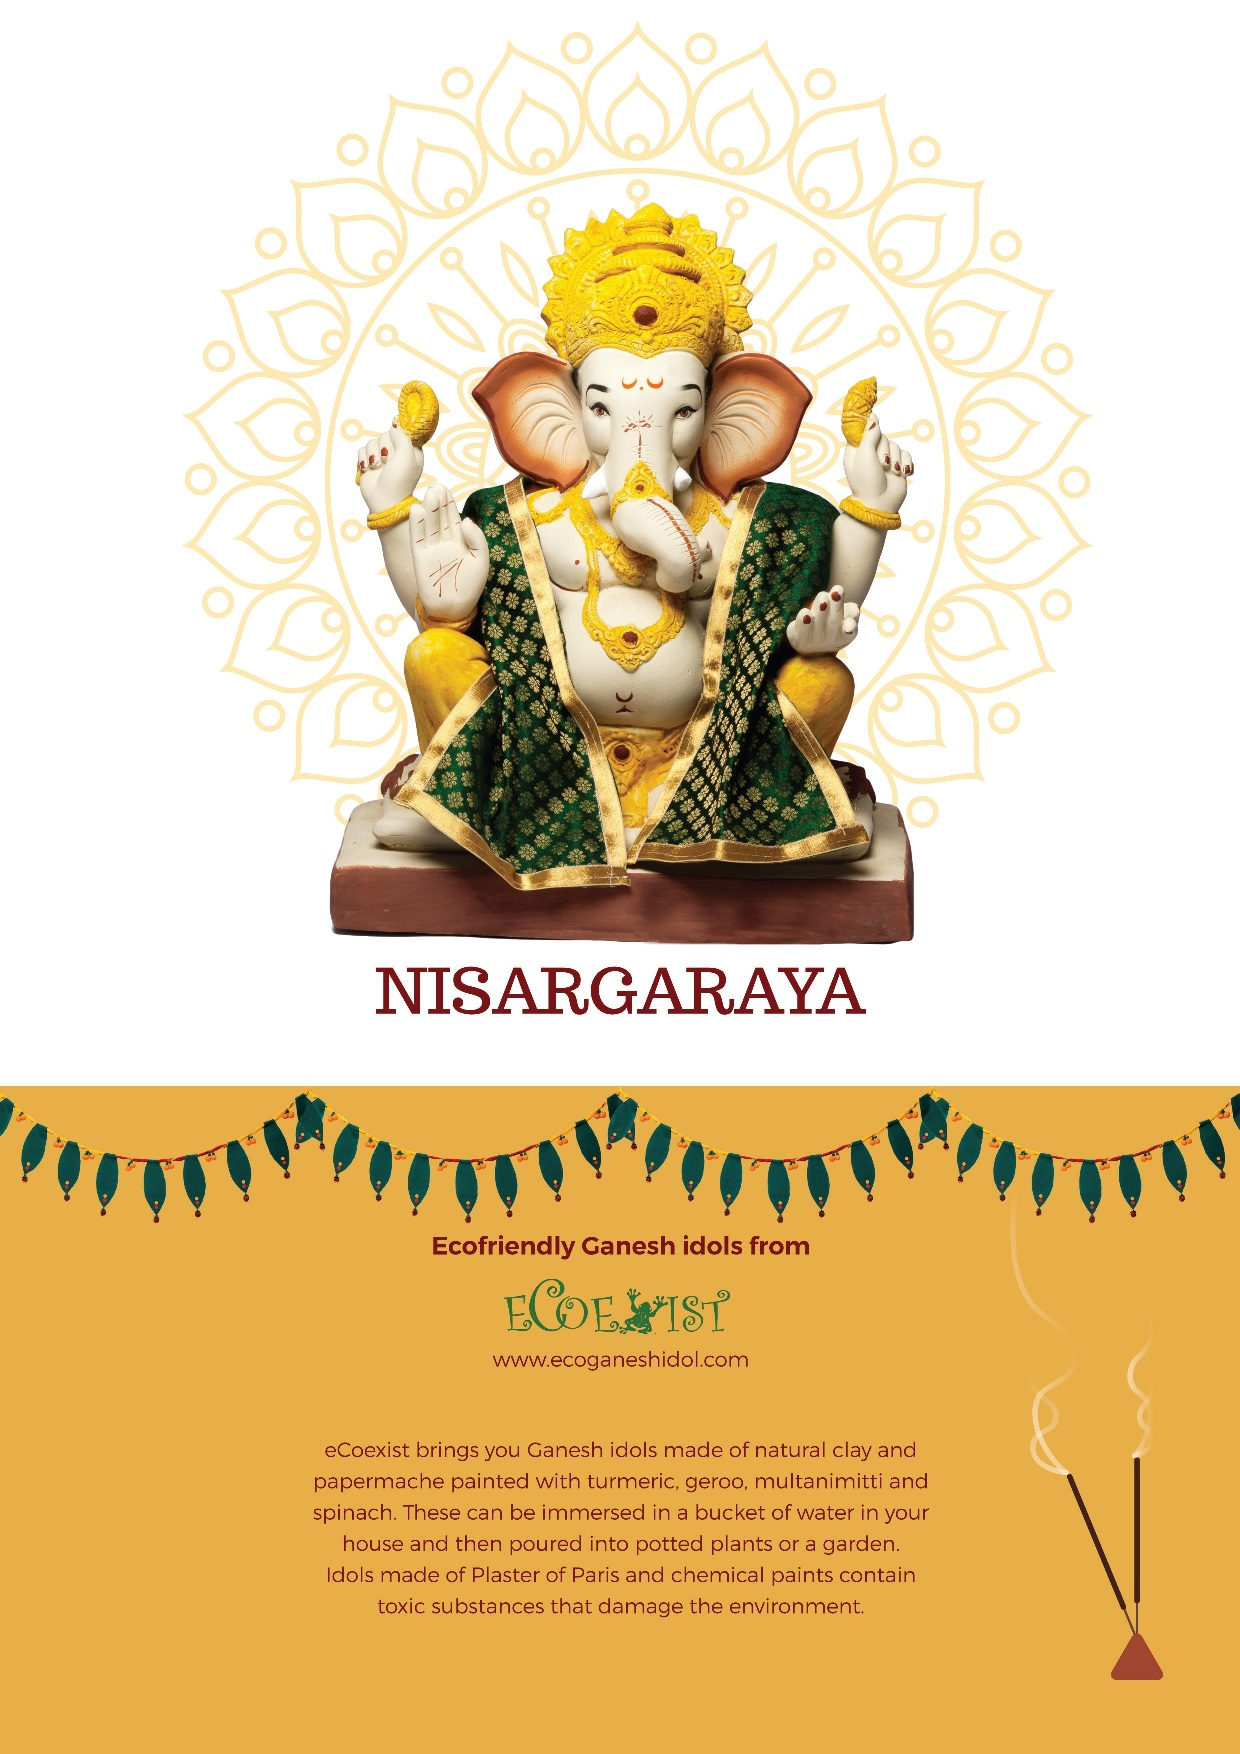 """Nisargaraya"" – Ecofriendly Ganesh idols from eCoexist – 2017"